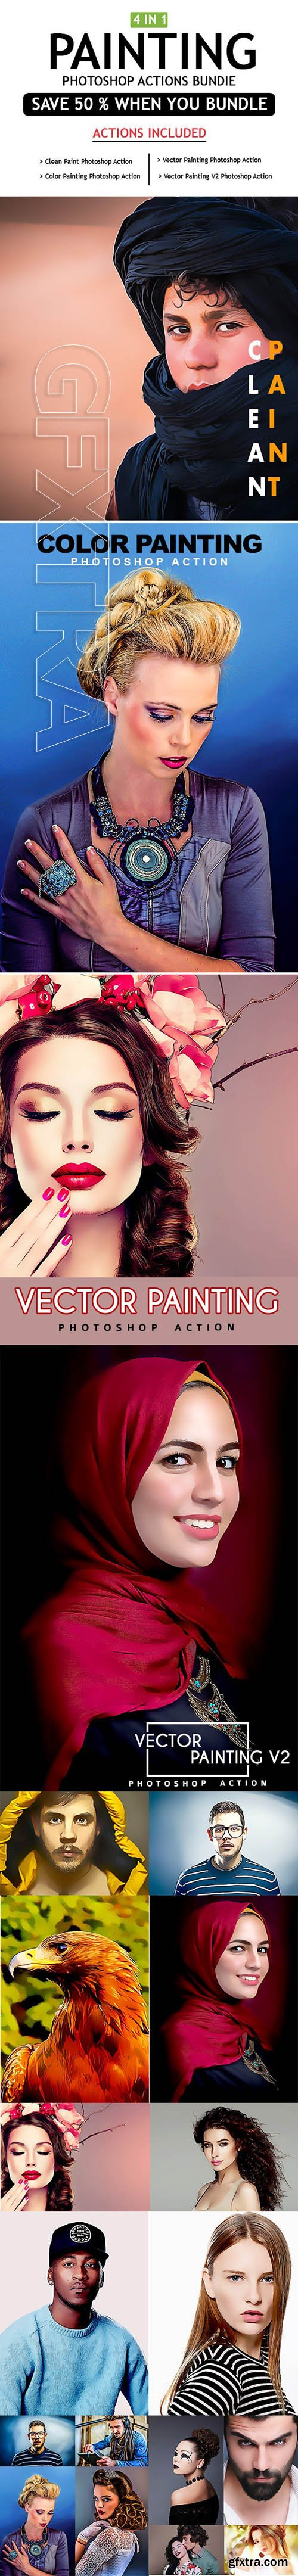 GraphicRiver - Painting 4 IN 1 Photoshop Actions Bundle 25490966